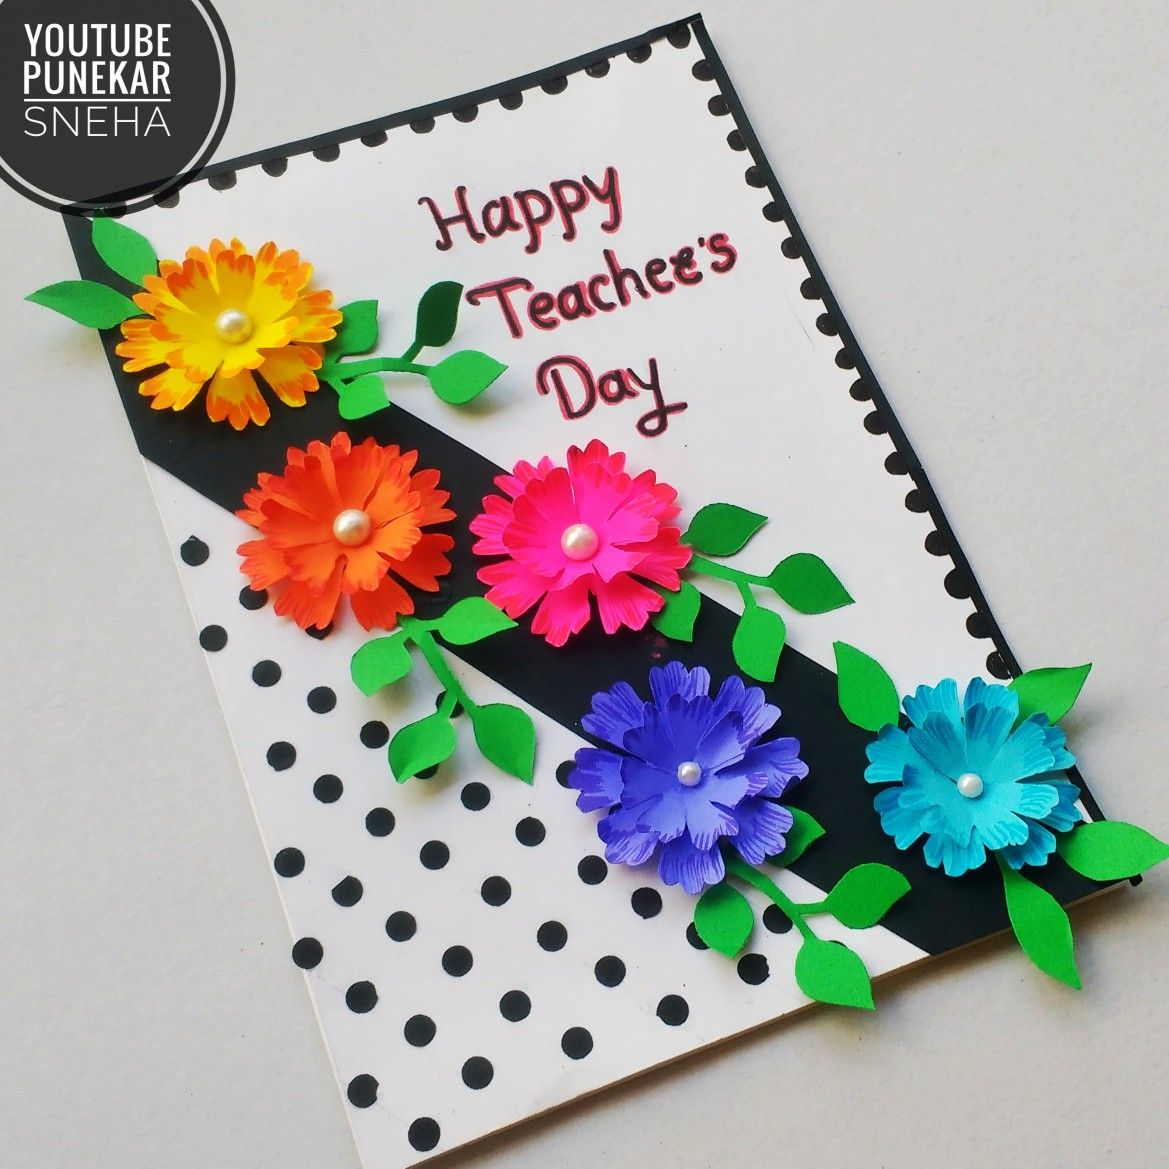 Teachersdaysong Teachersday Teachersdaycard Punekarsneha